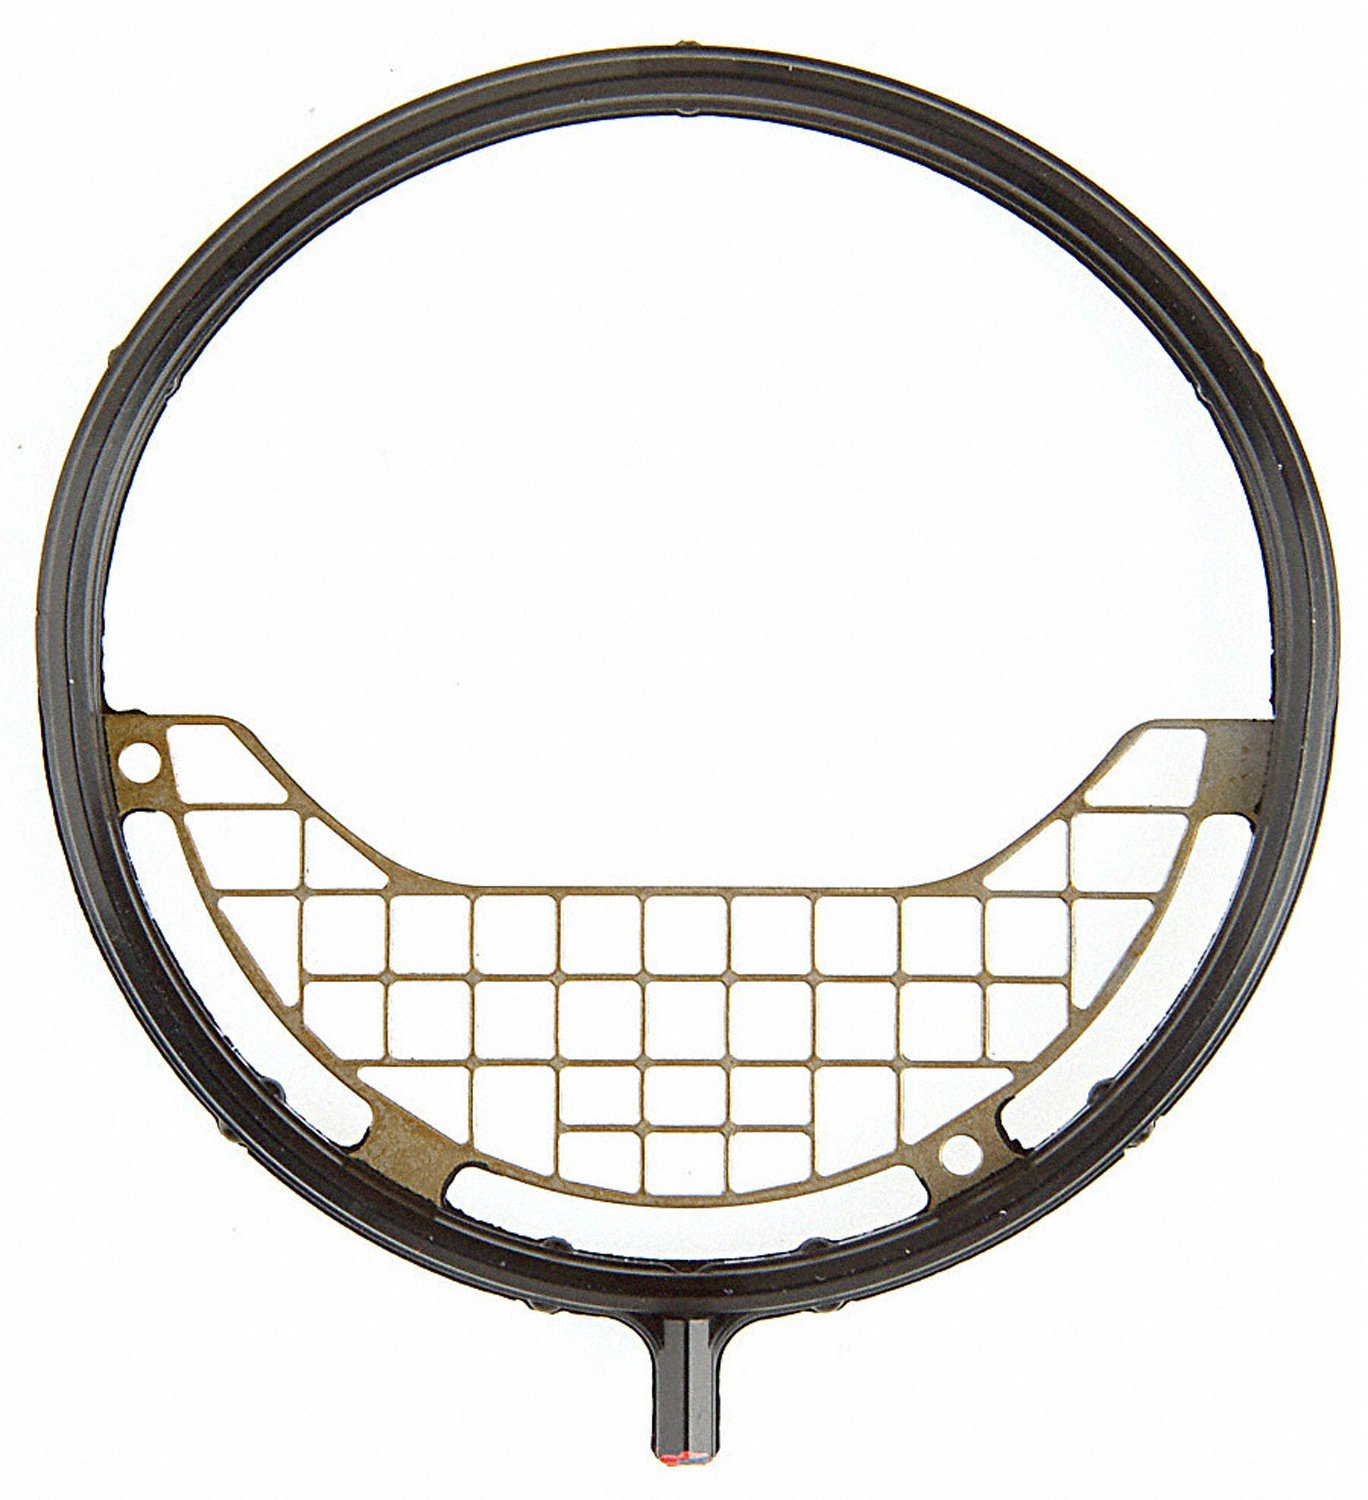 Fel-Pro 61421 Throttle Body Gasket